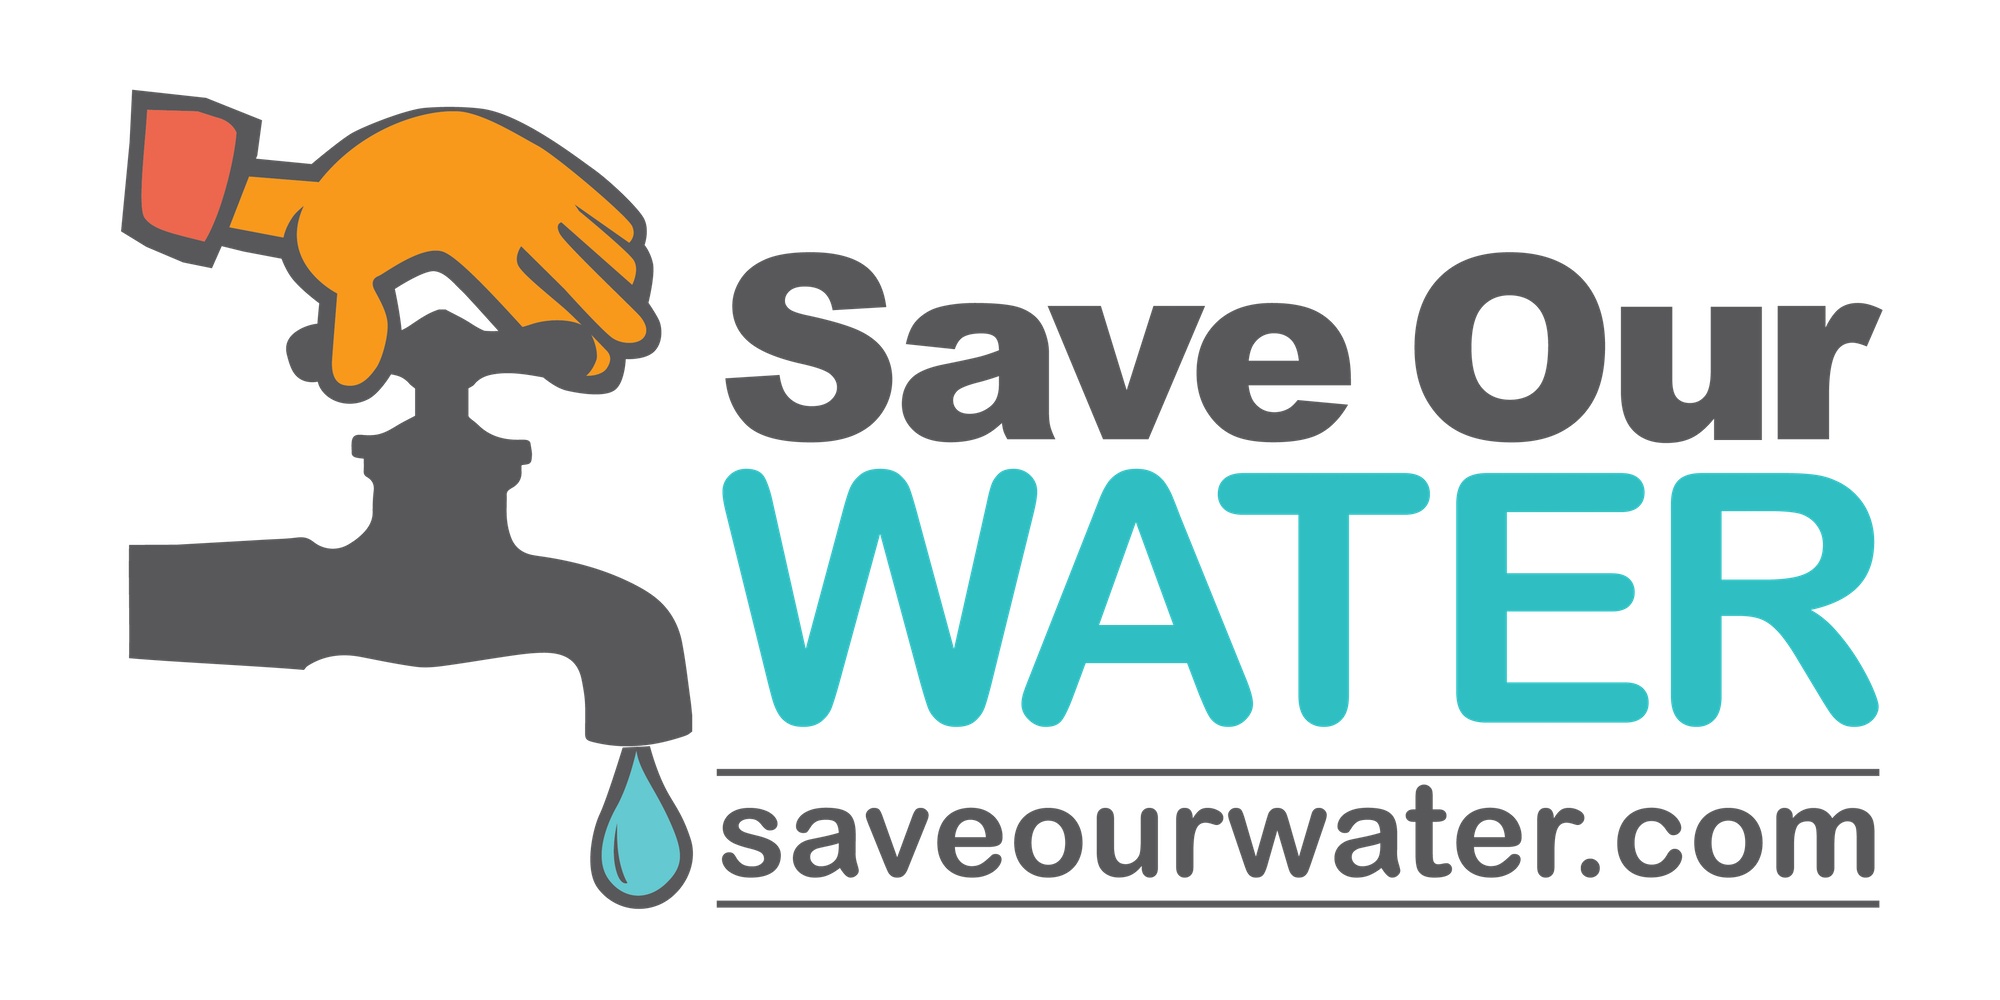 Cartoon Faucet and hand, Text Save Our Water, Text saveourwater.com